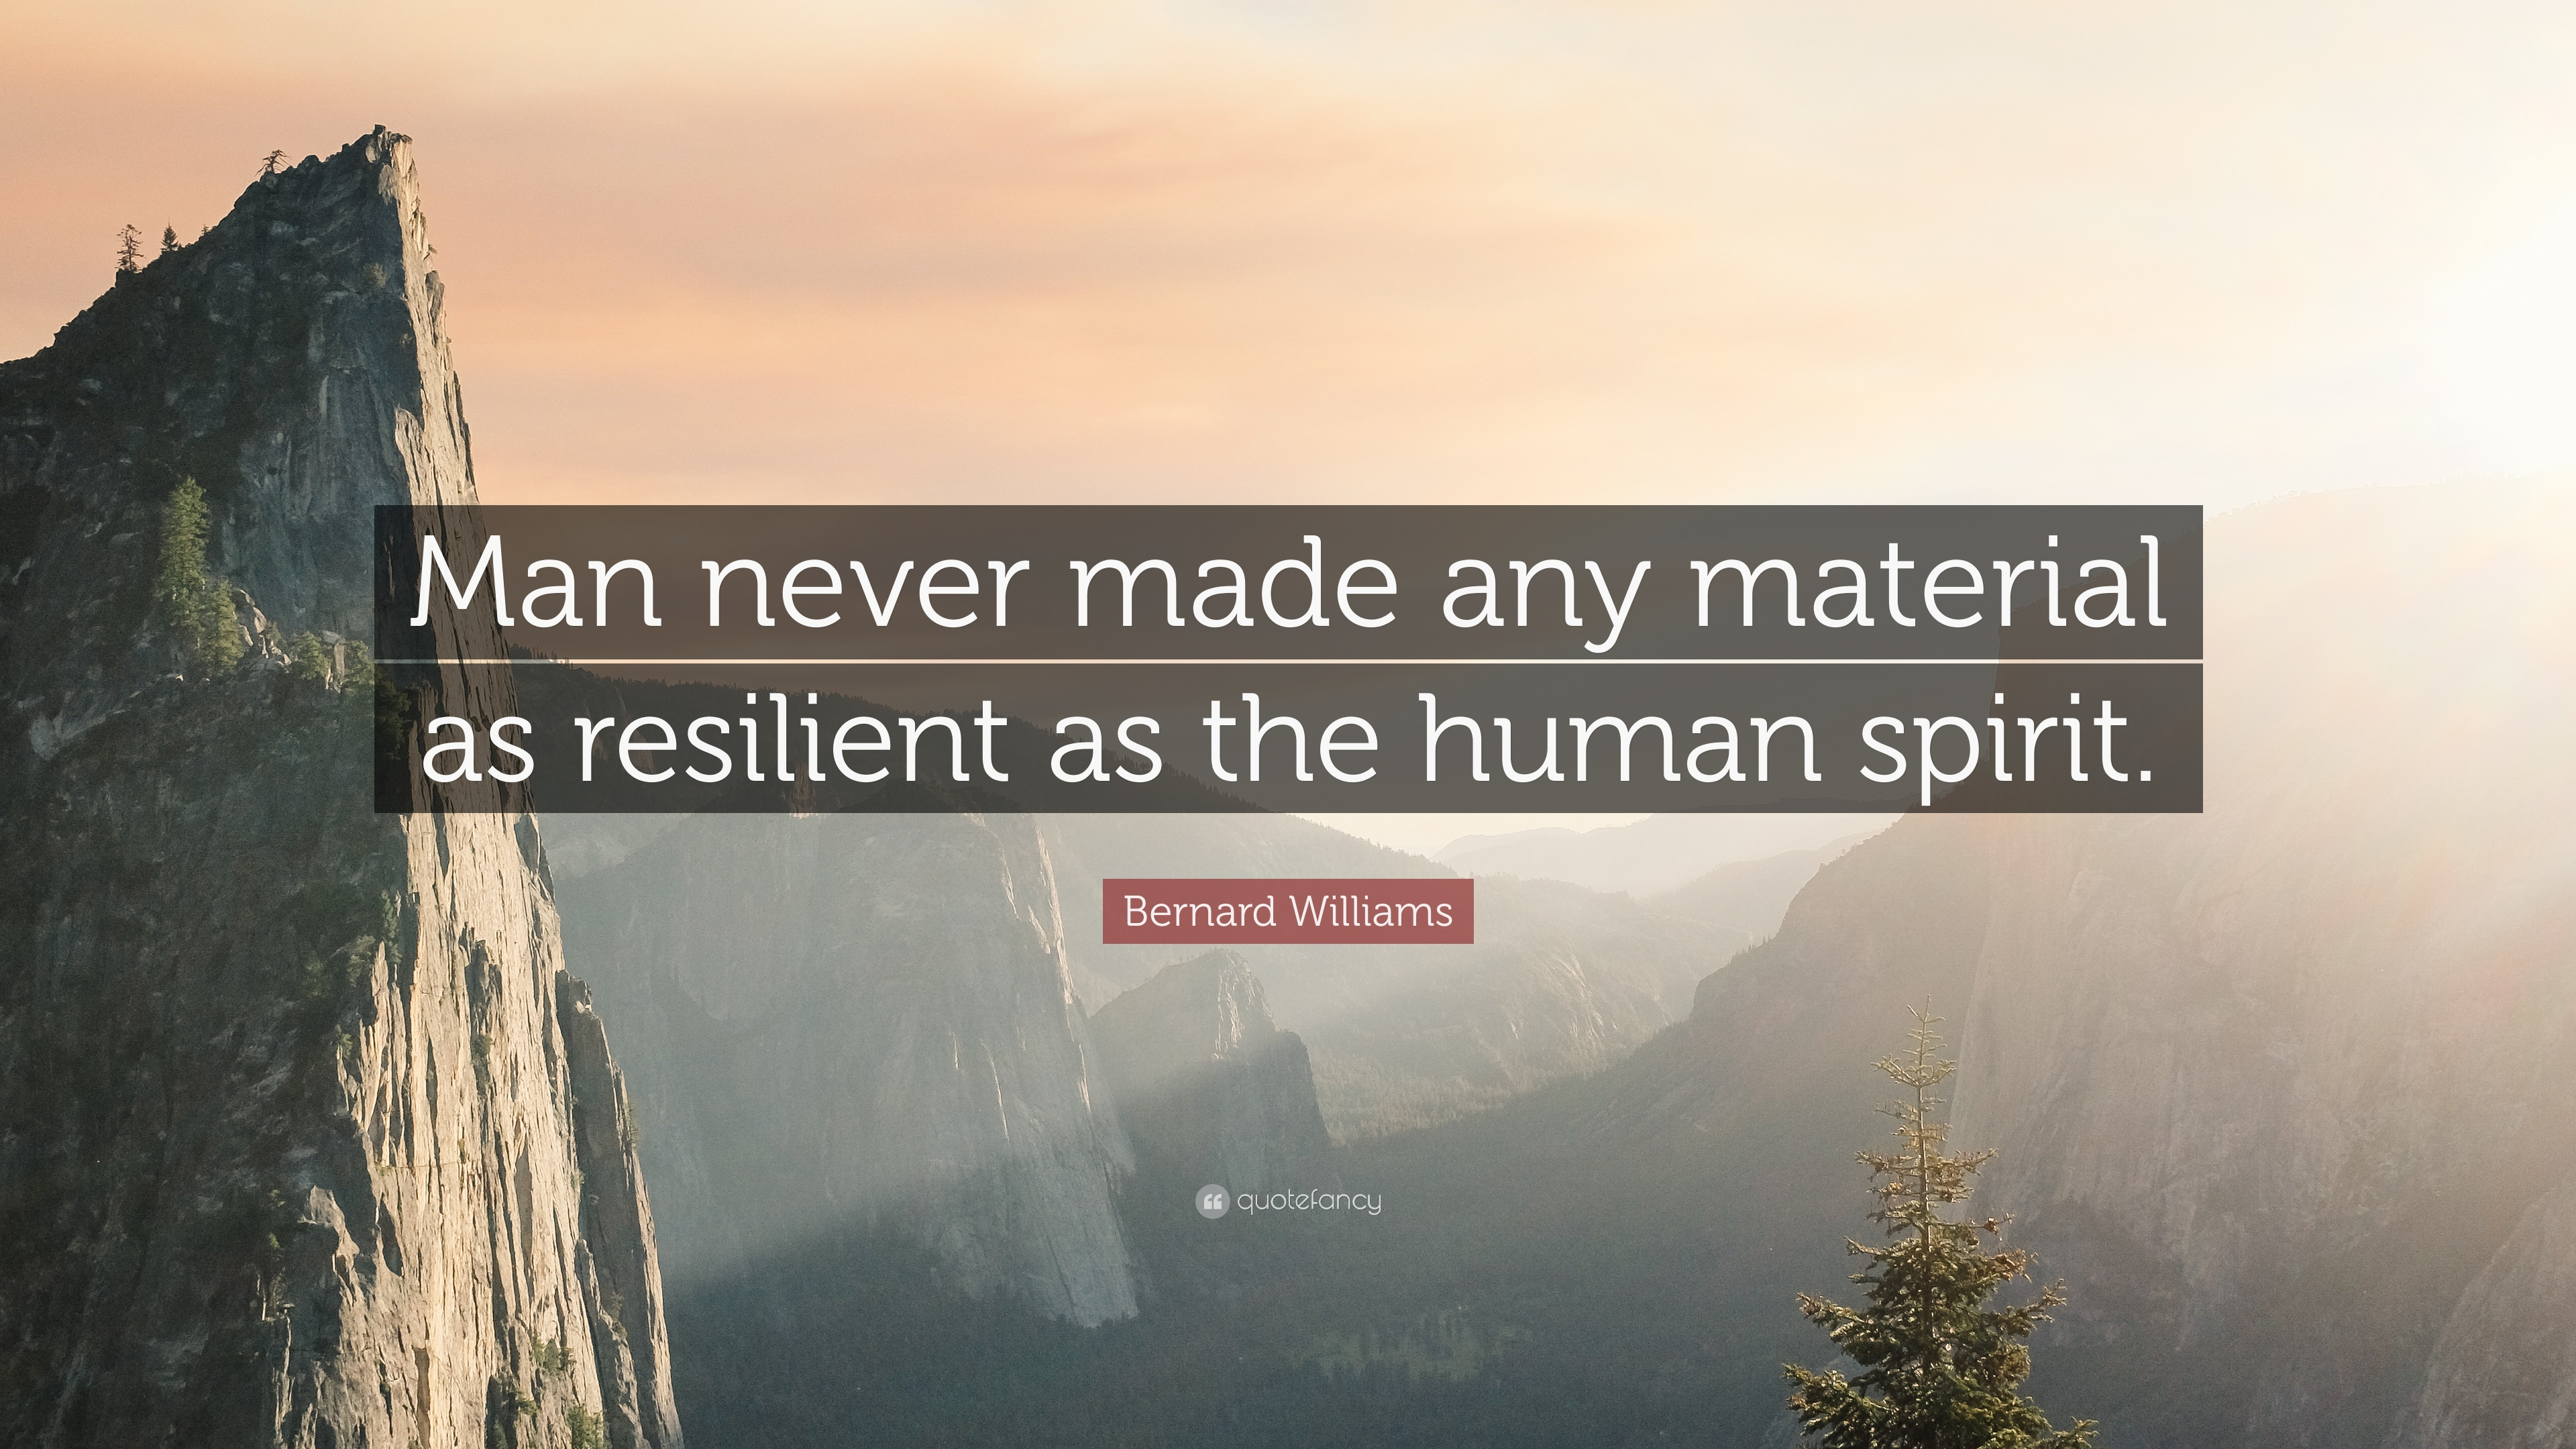 how the human spirit is resilient Almost 19 years after starting my career, i'm in awe of the resiliency of the human spirit  i remain in awe of the resilient human spirit .